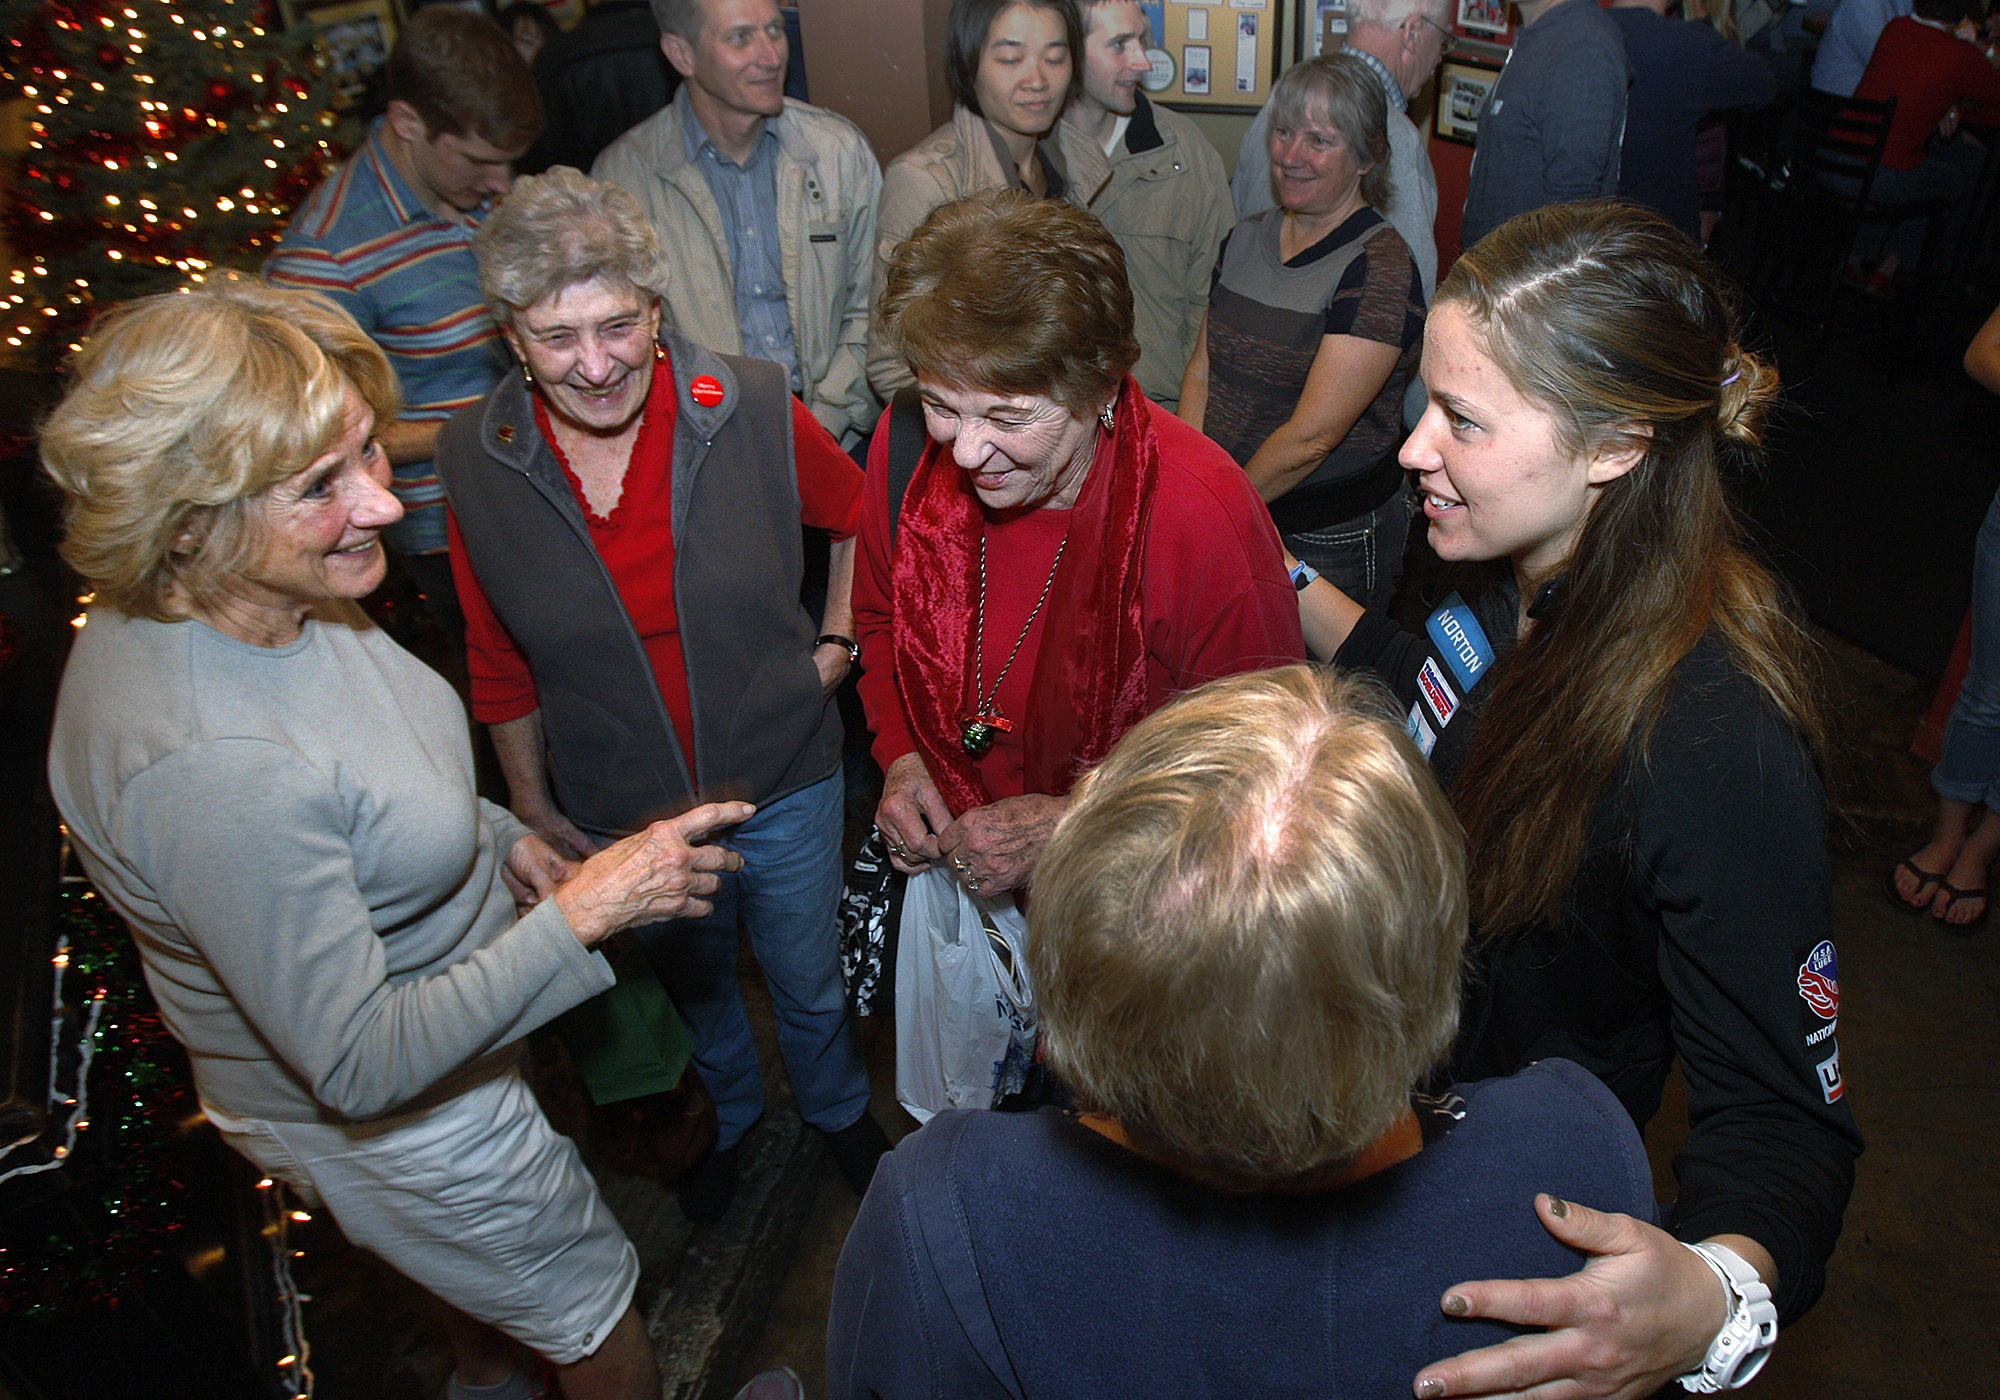 Kate Hansen, right, competing in the luge in the wither Olympics in Sochi, greets and thanks supporters, including Cynthia Smithers, of La Canada Flintrdge, Toni Brooks, of Pasadena, Ann Neilson, of La Canada Flintrdige and Claudia Beach, (back to camera) at Los Gringos Locos in La Canada Flintridge on Monday, December 23, 2013.